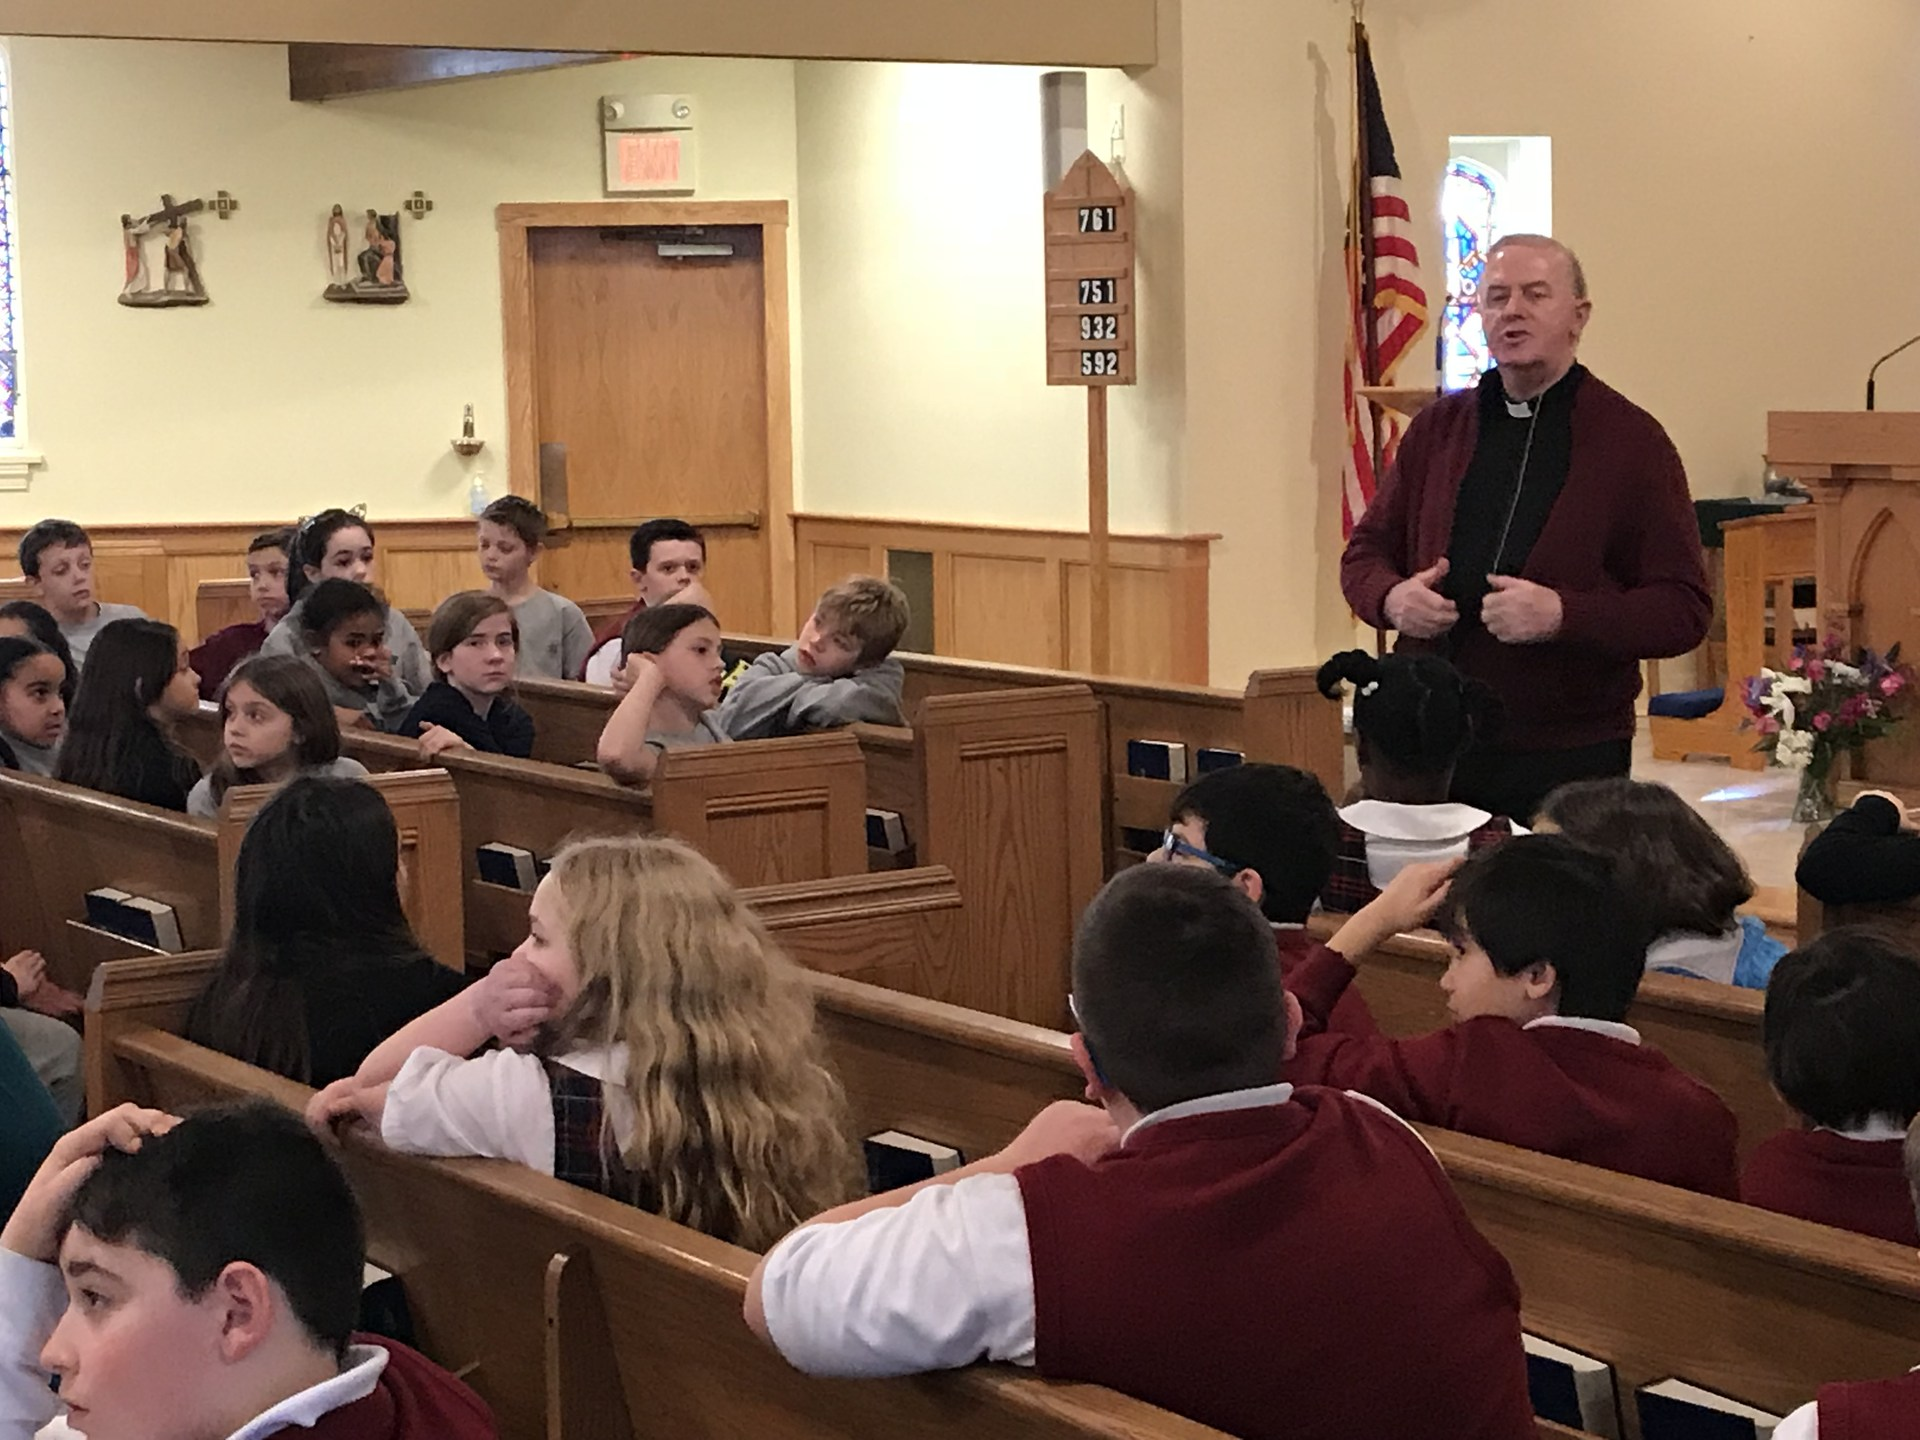 Priest taking question from fourth-grade student during retreat